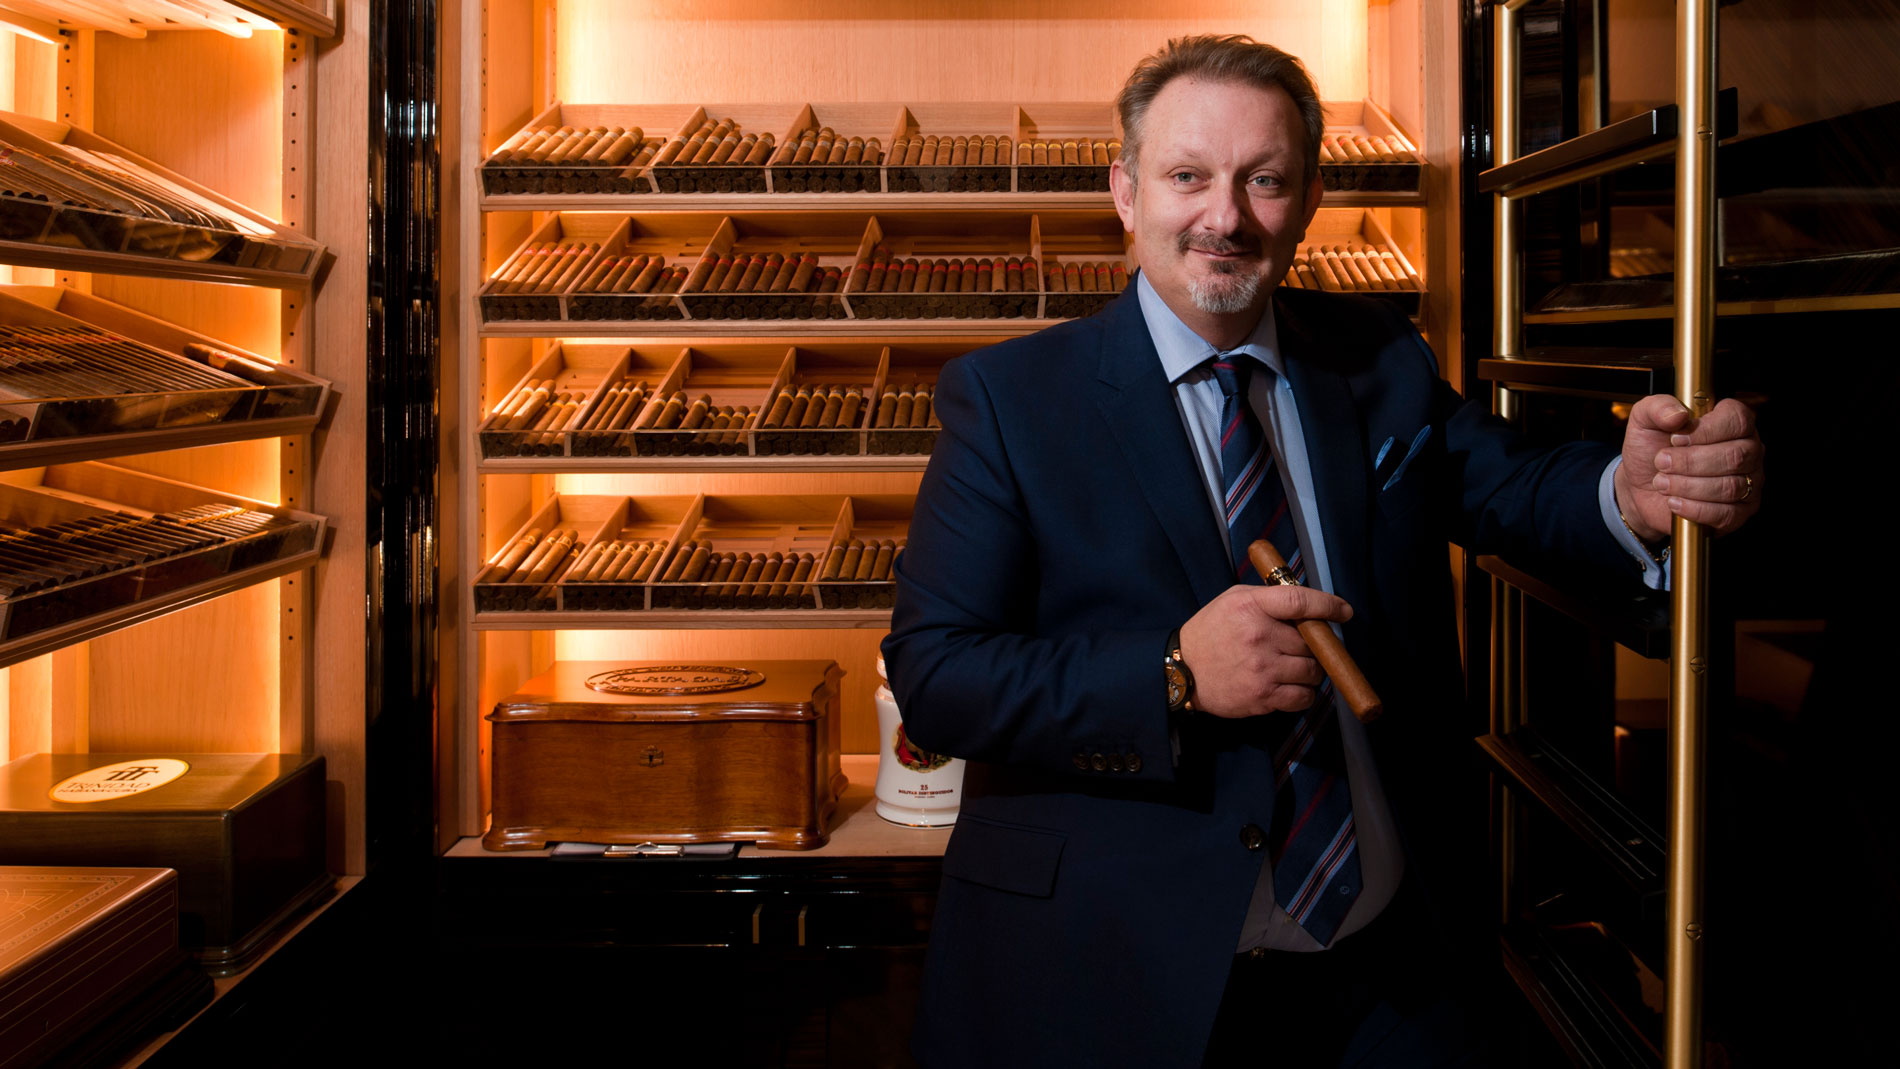 Meet the Cigar Sommelier Who Convinces People to Smoke $7,000 Cigars